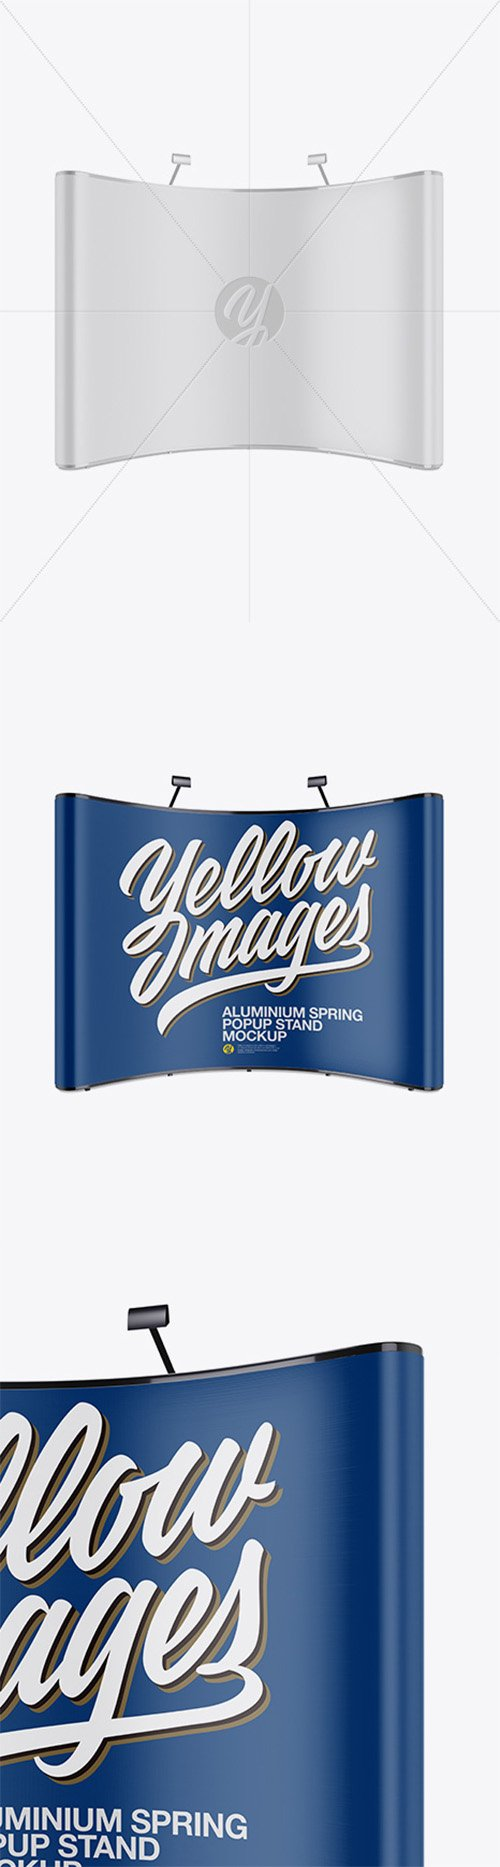 Matte Aluminium Spring Pop-Up Stand Mockup - Front View 21002 TIF